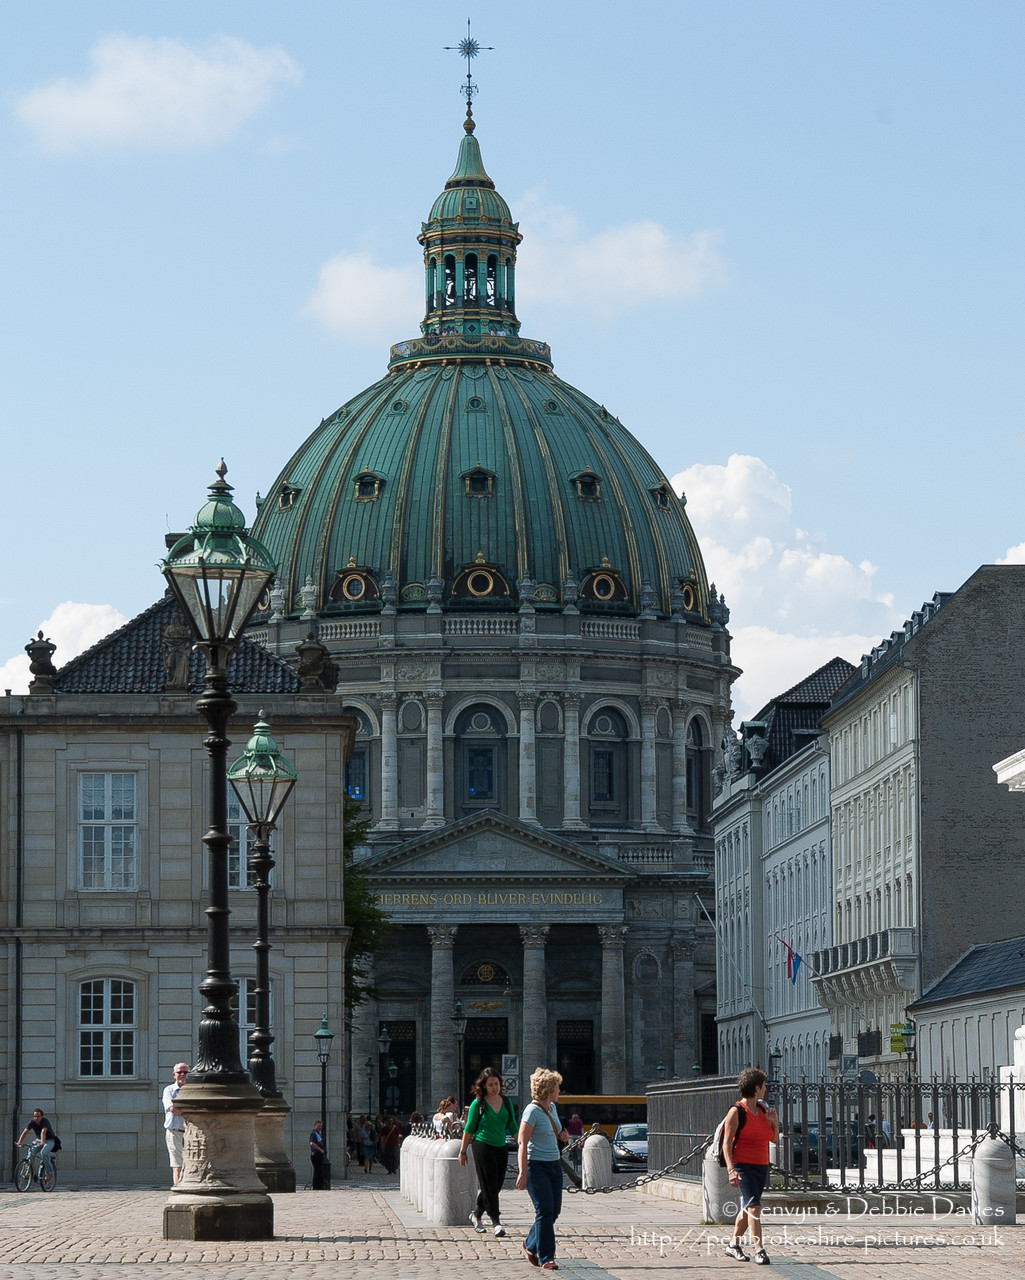 Frederik's Church (Danish: Frederiks Kirke), popularly known as The Marble Church (Marmorkirken) for its architecture, is an Evangelical Lutheran church in Copenhagen, Denmark. It is located just west of Amalienborg Palace.